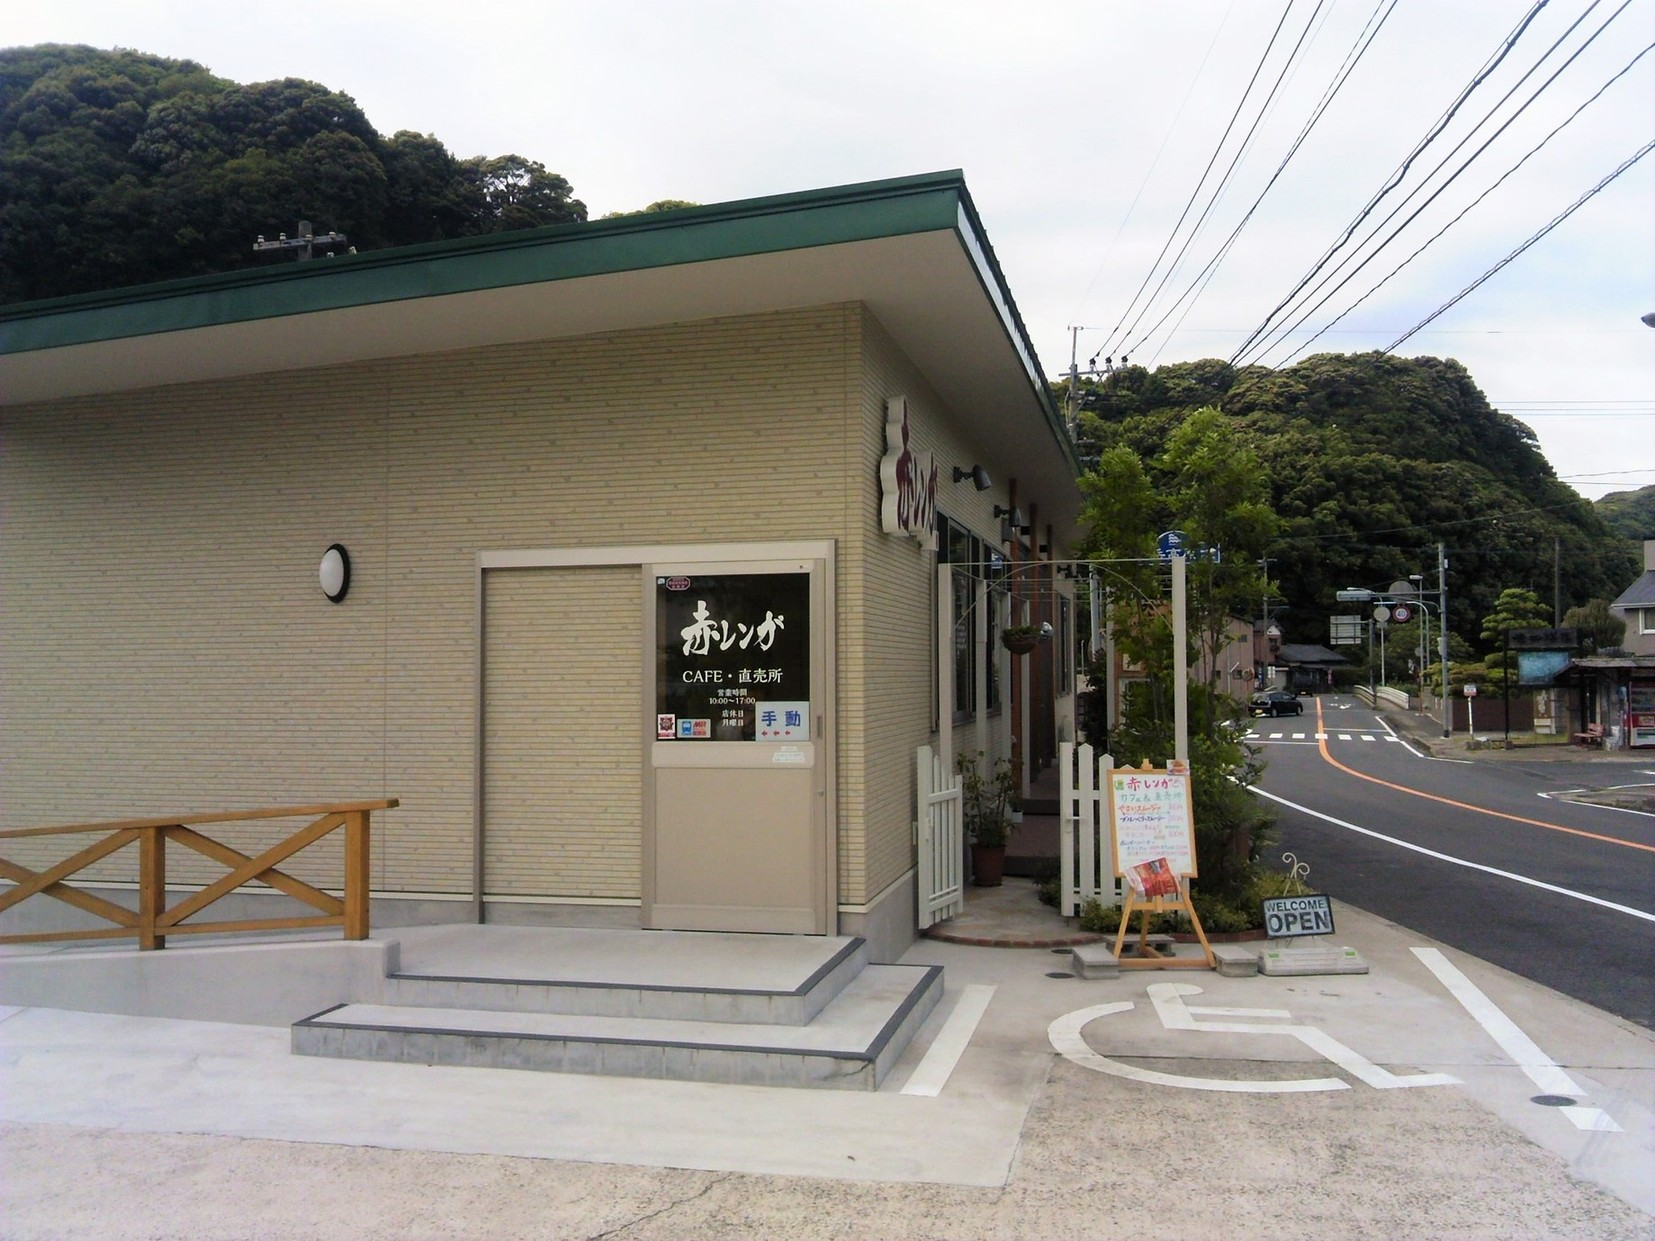 Cafe&直売所 赤レンガ